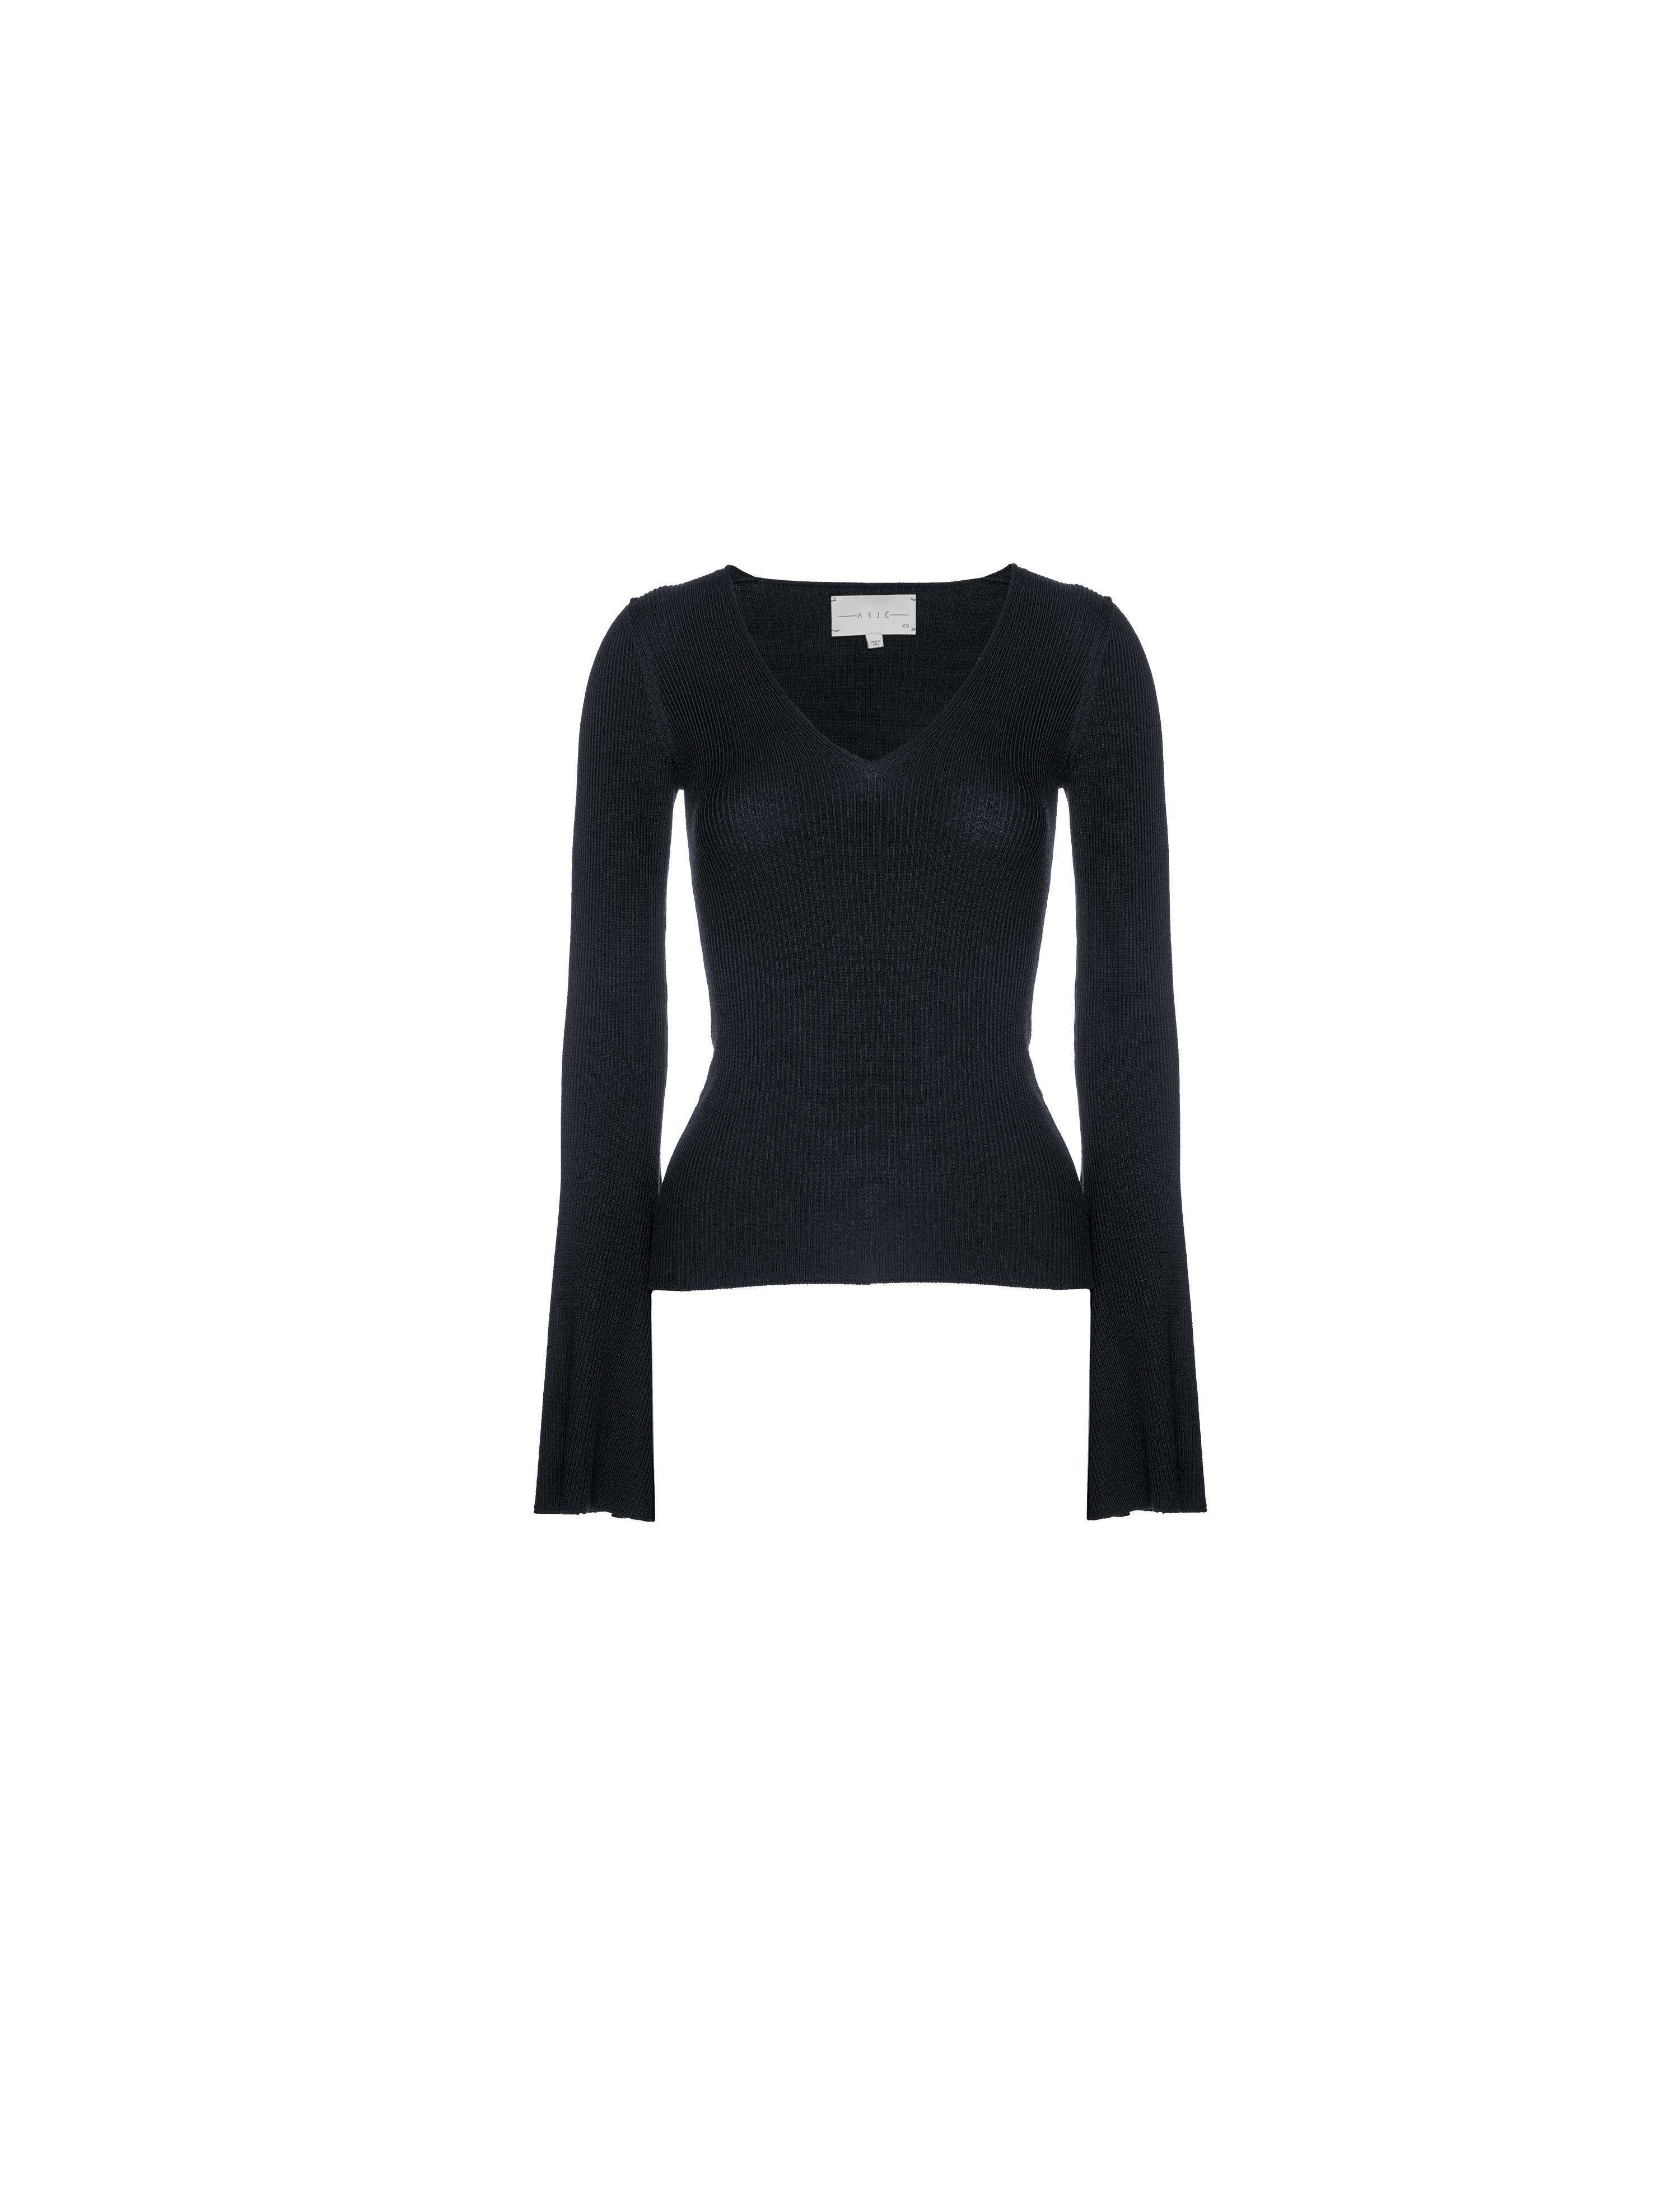 THE ST MORITZ WOOL FITTED VNECK KNIT 0